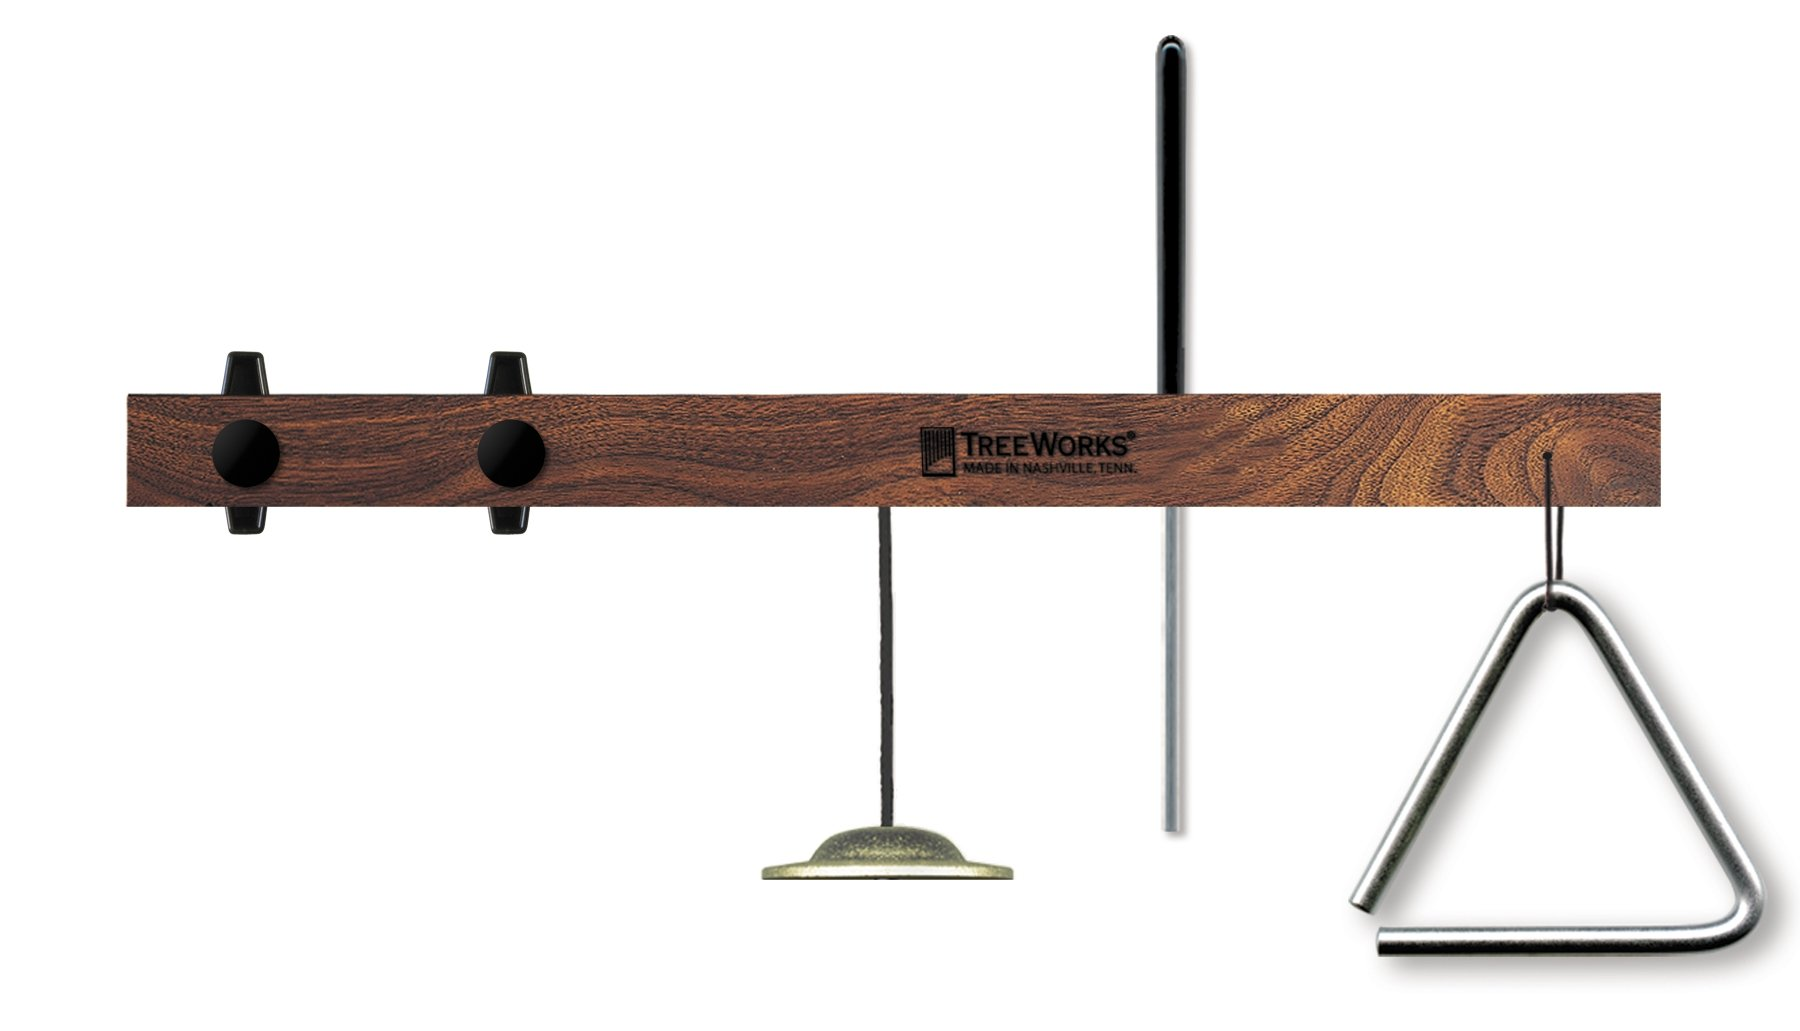 TreeWorks Chimes TRE53 Made in USA Triangle Mount with Finger Cymbal and Triangle Beater [Triangle Not Included] (VIDEO)